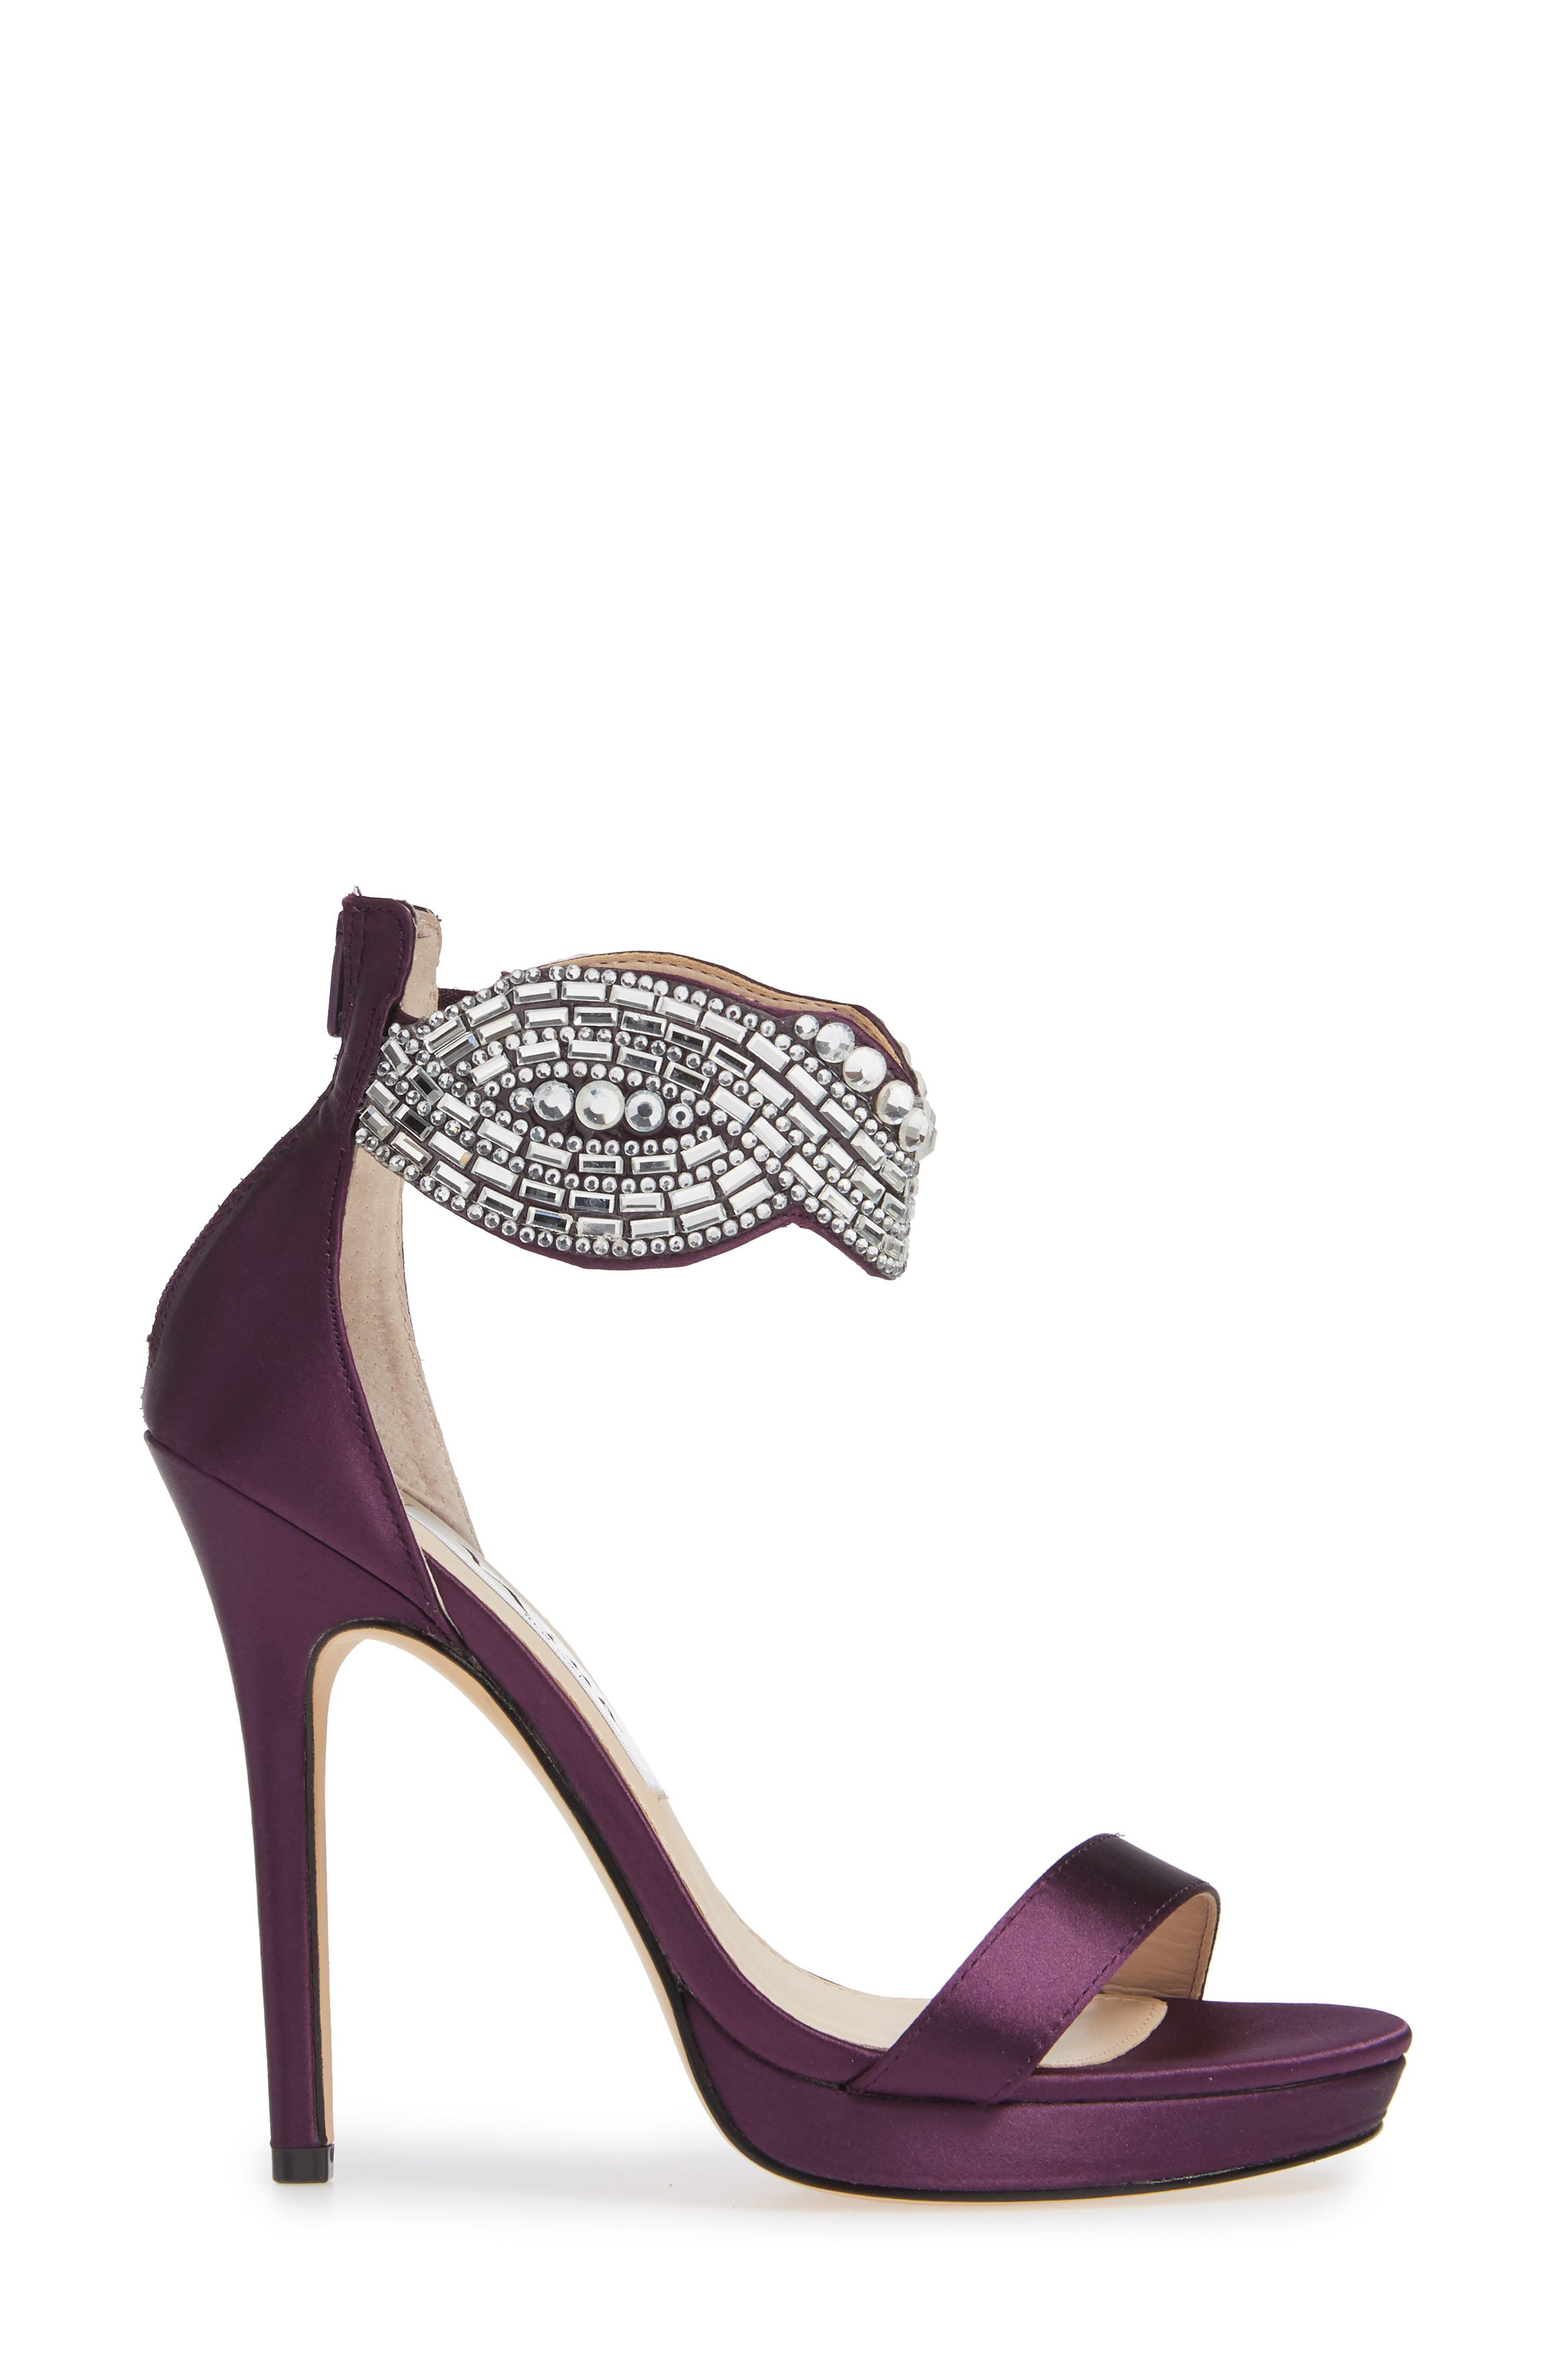 Fayth Jeweled Ankle Cuff Sandal,                             Alternate thumbnail 3, color,                             EGGPLANT SATIN